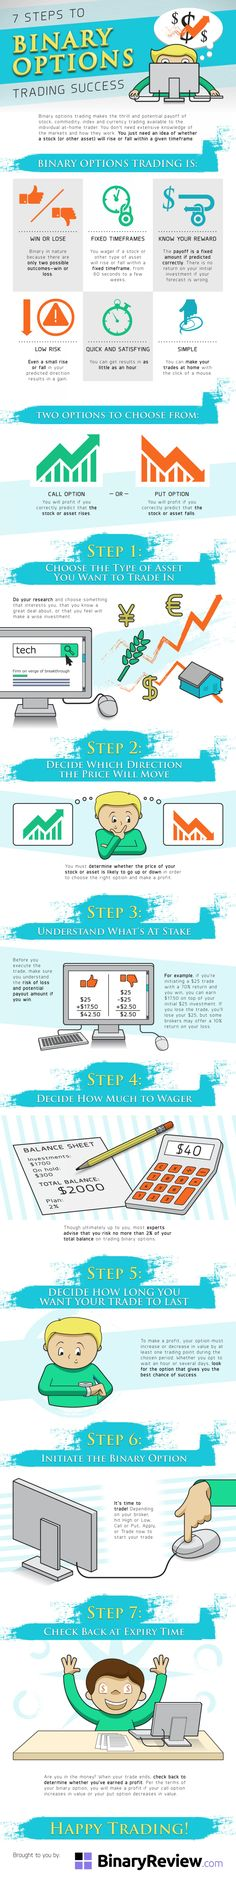 7 Steps to Binary Options Trading Success Infographic  By  www.100mcxtips.com/blog/